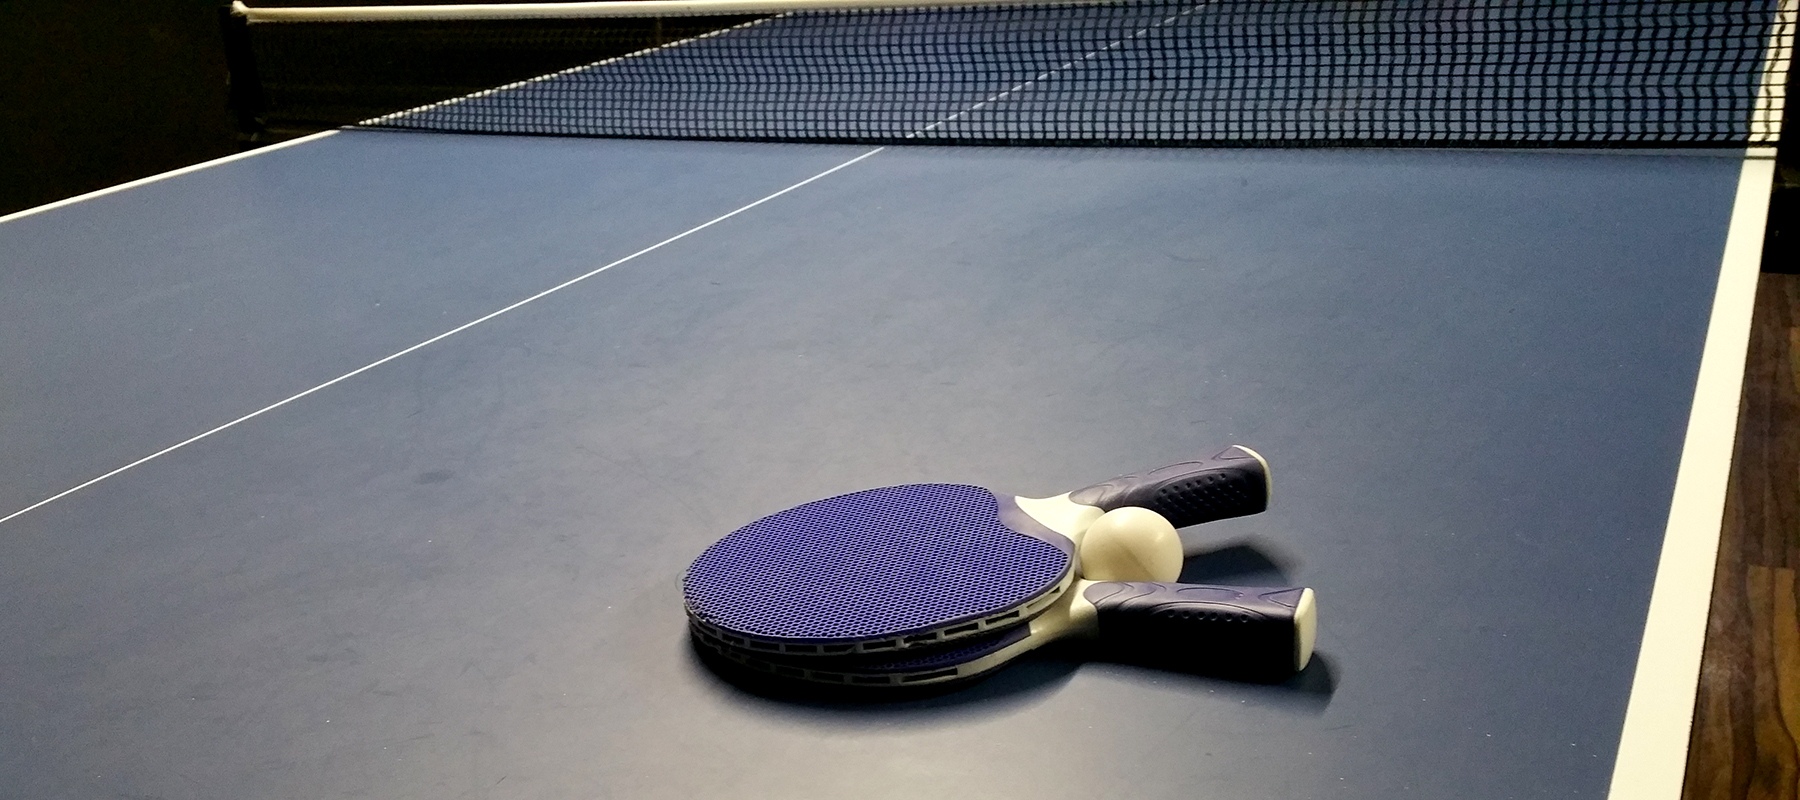 One Pastor's Method of Mentoring? Ping Pong.